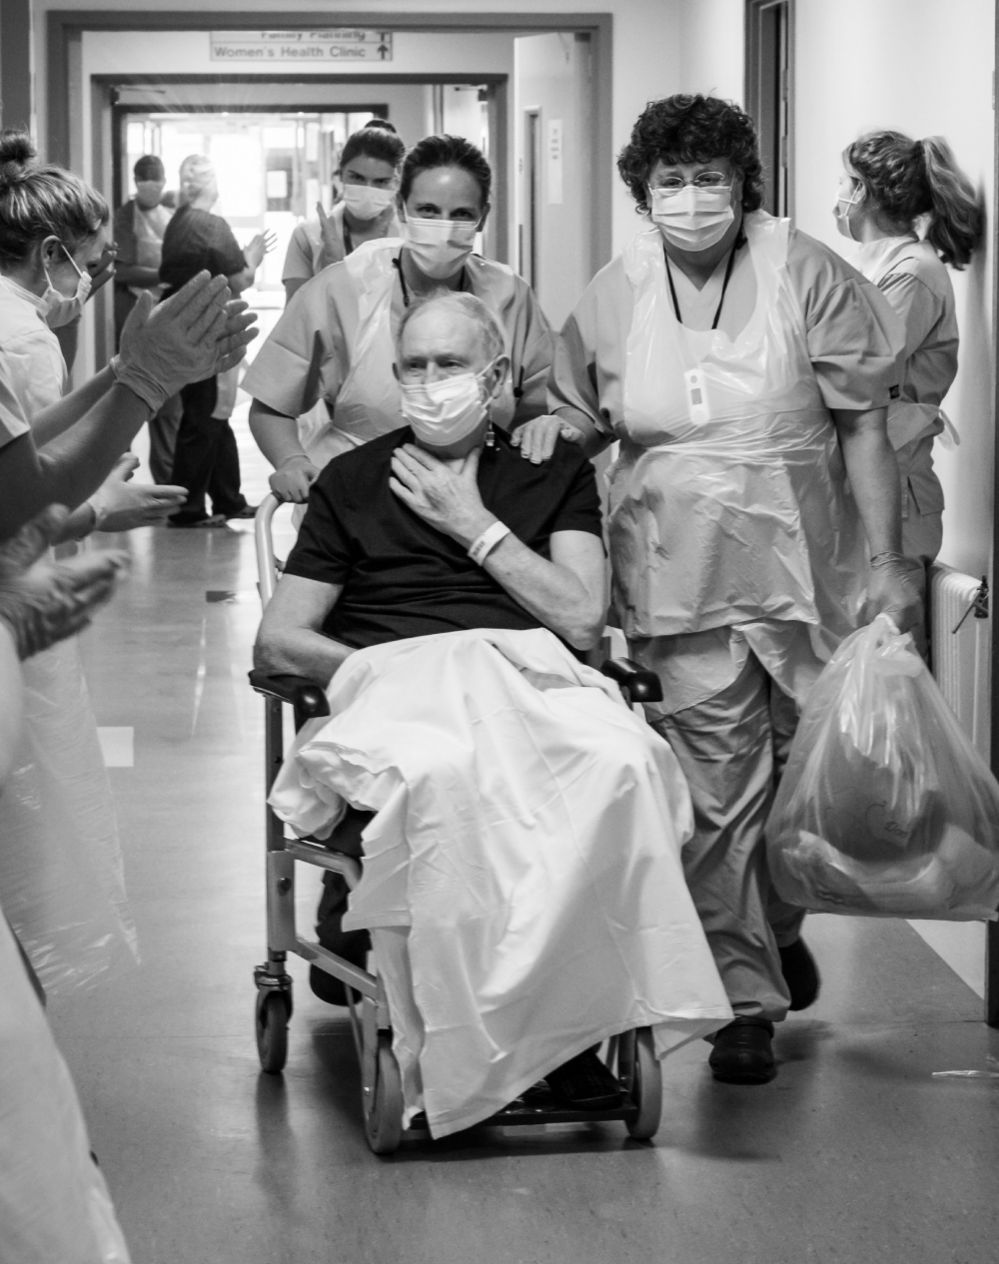 A patient is clapped while leaving the ITU